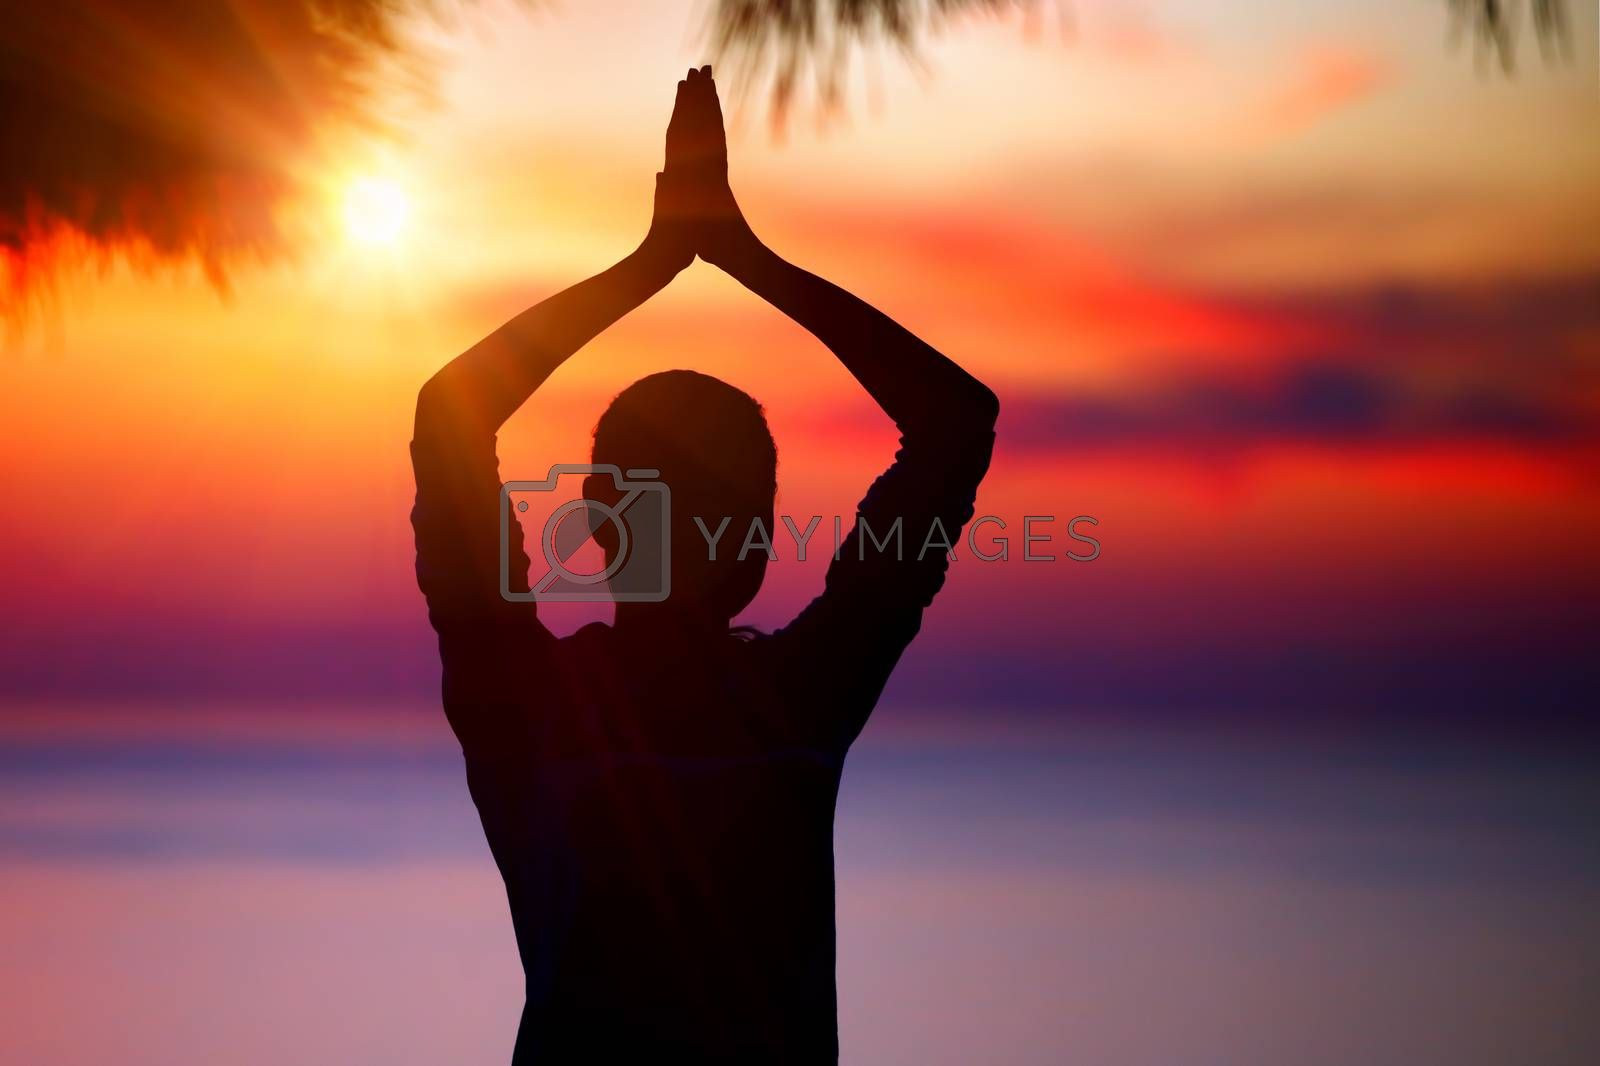 Silhouette of a woman doing yoga posture over colorful sunset background, meditation outdoors, mental health, healthy lifestyle concept